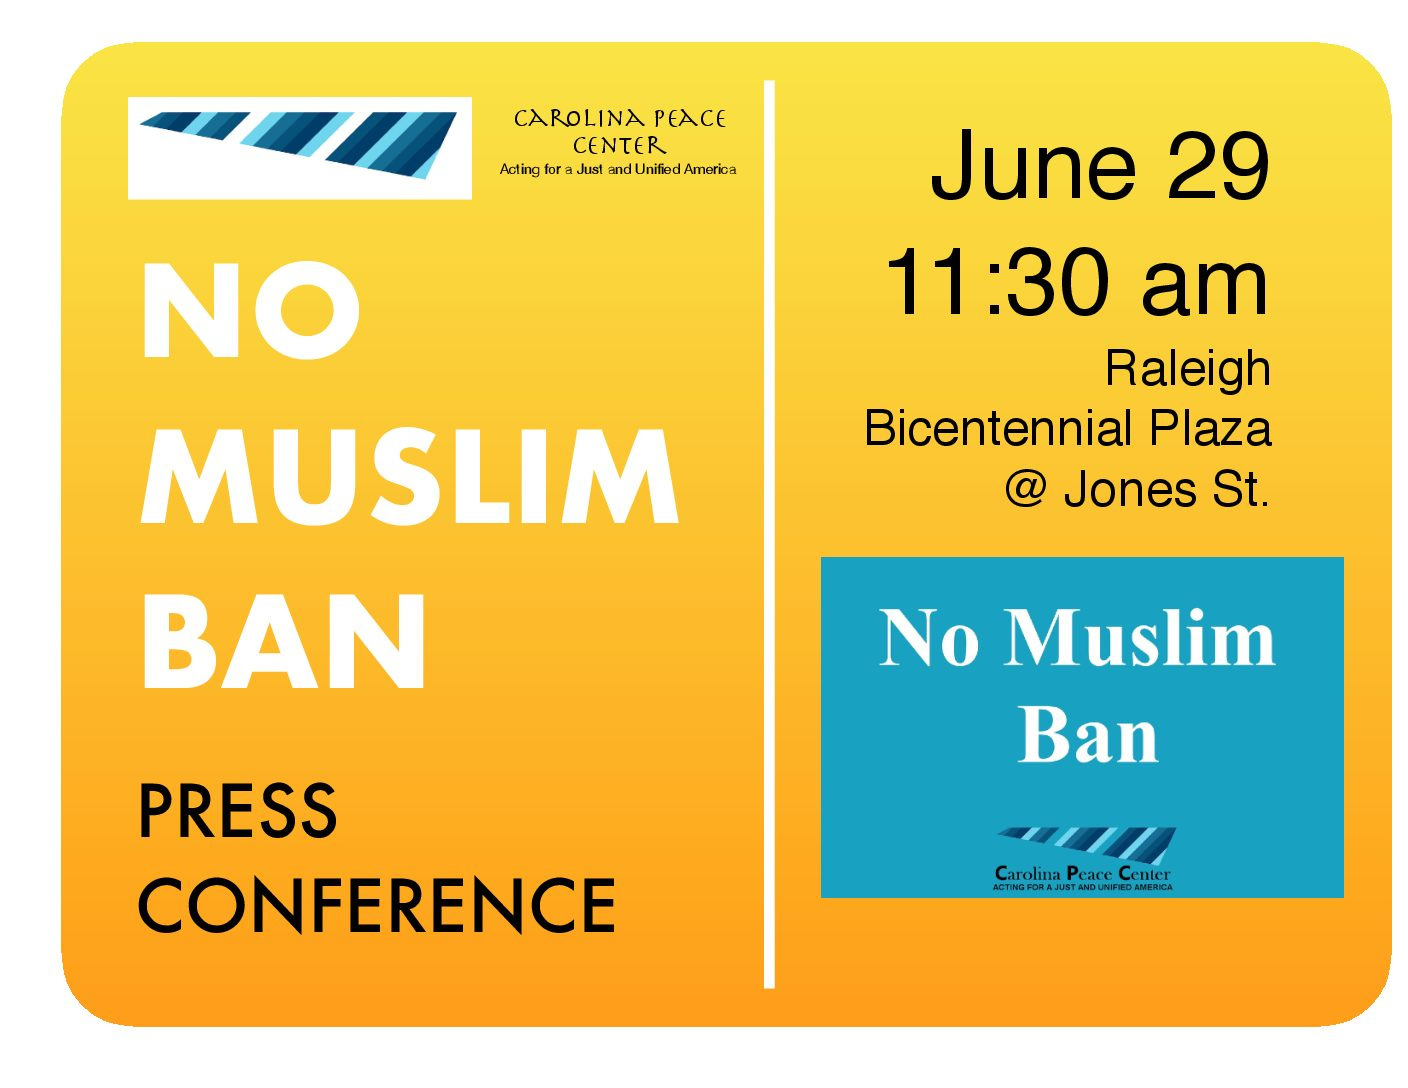 EVENT: No Muslim Ban Press Conference